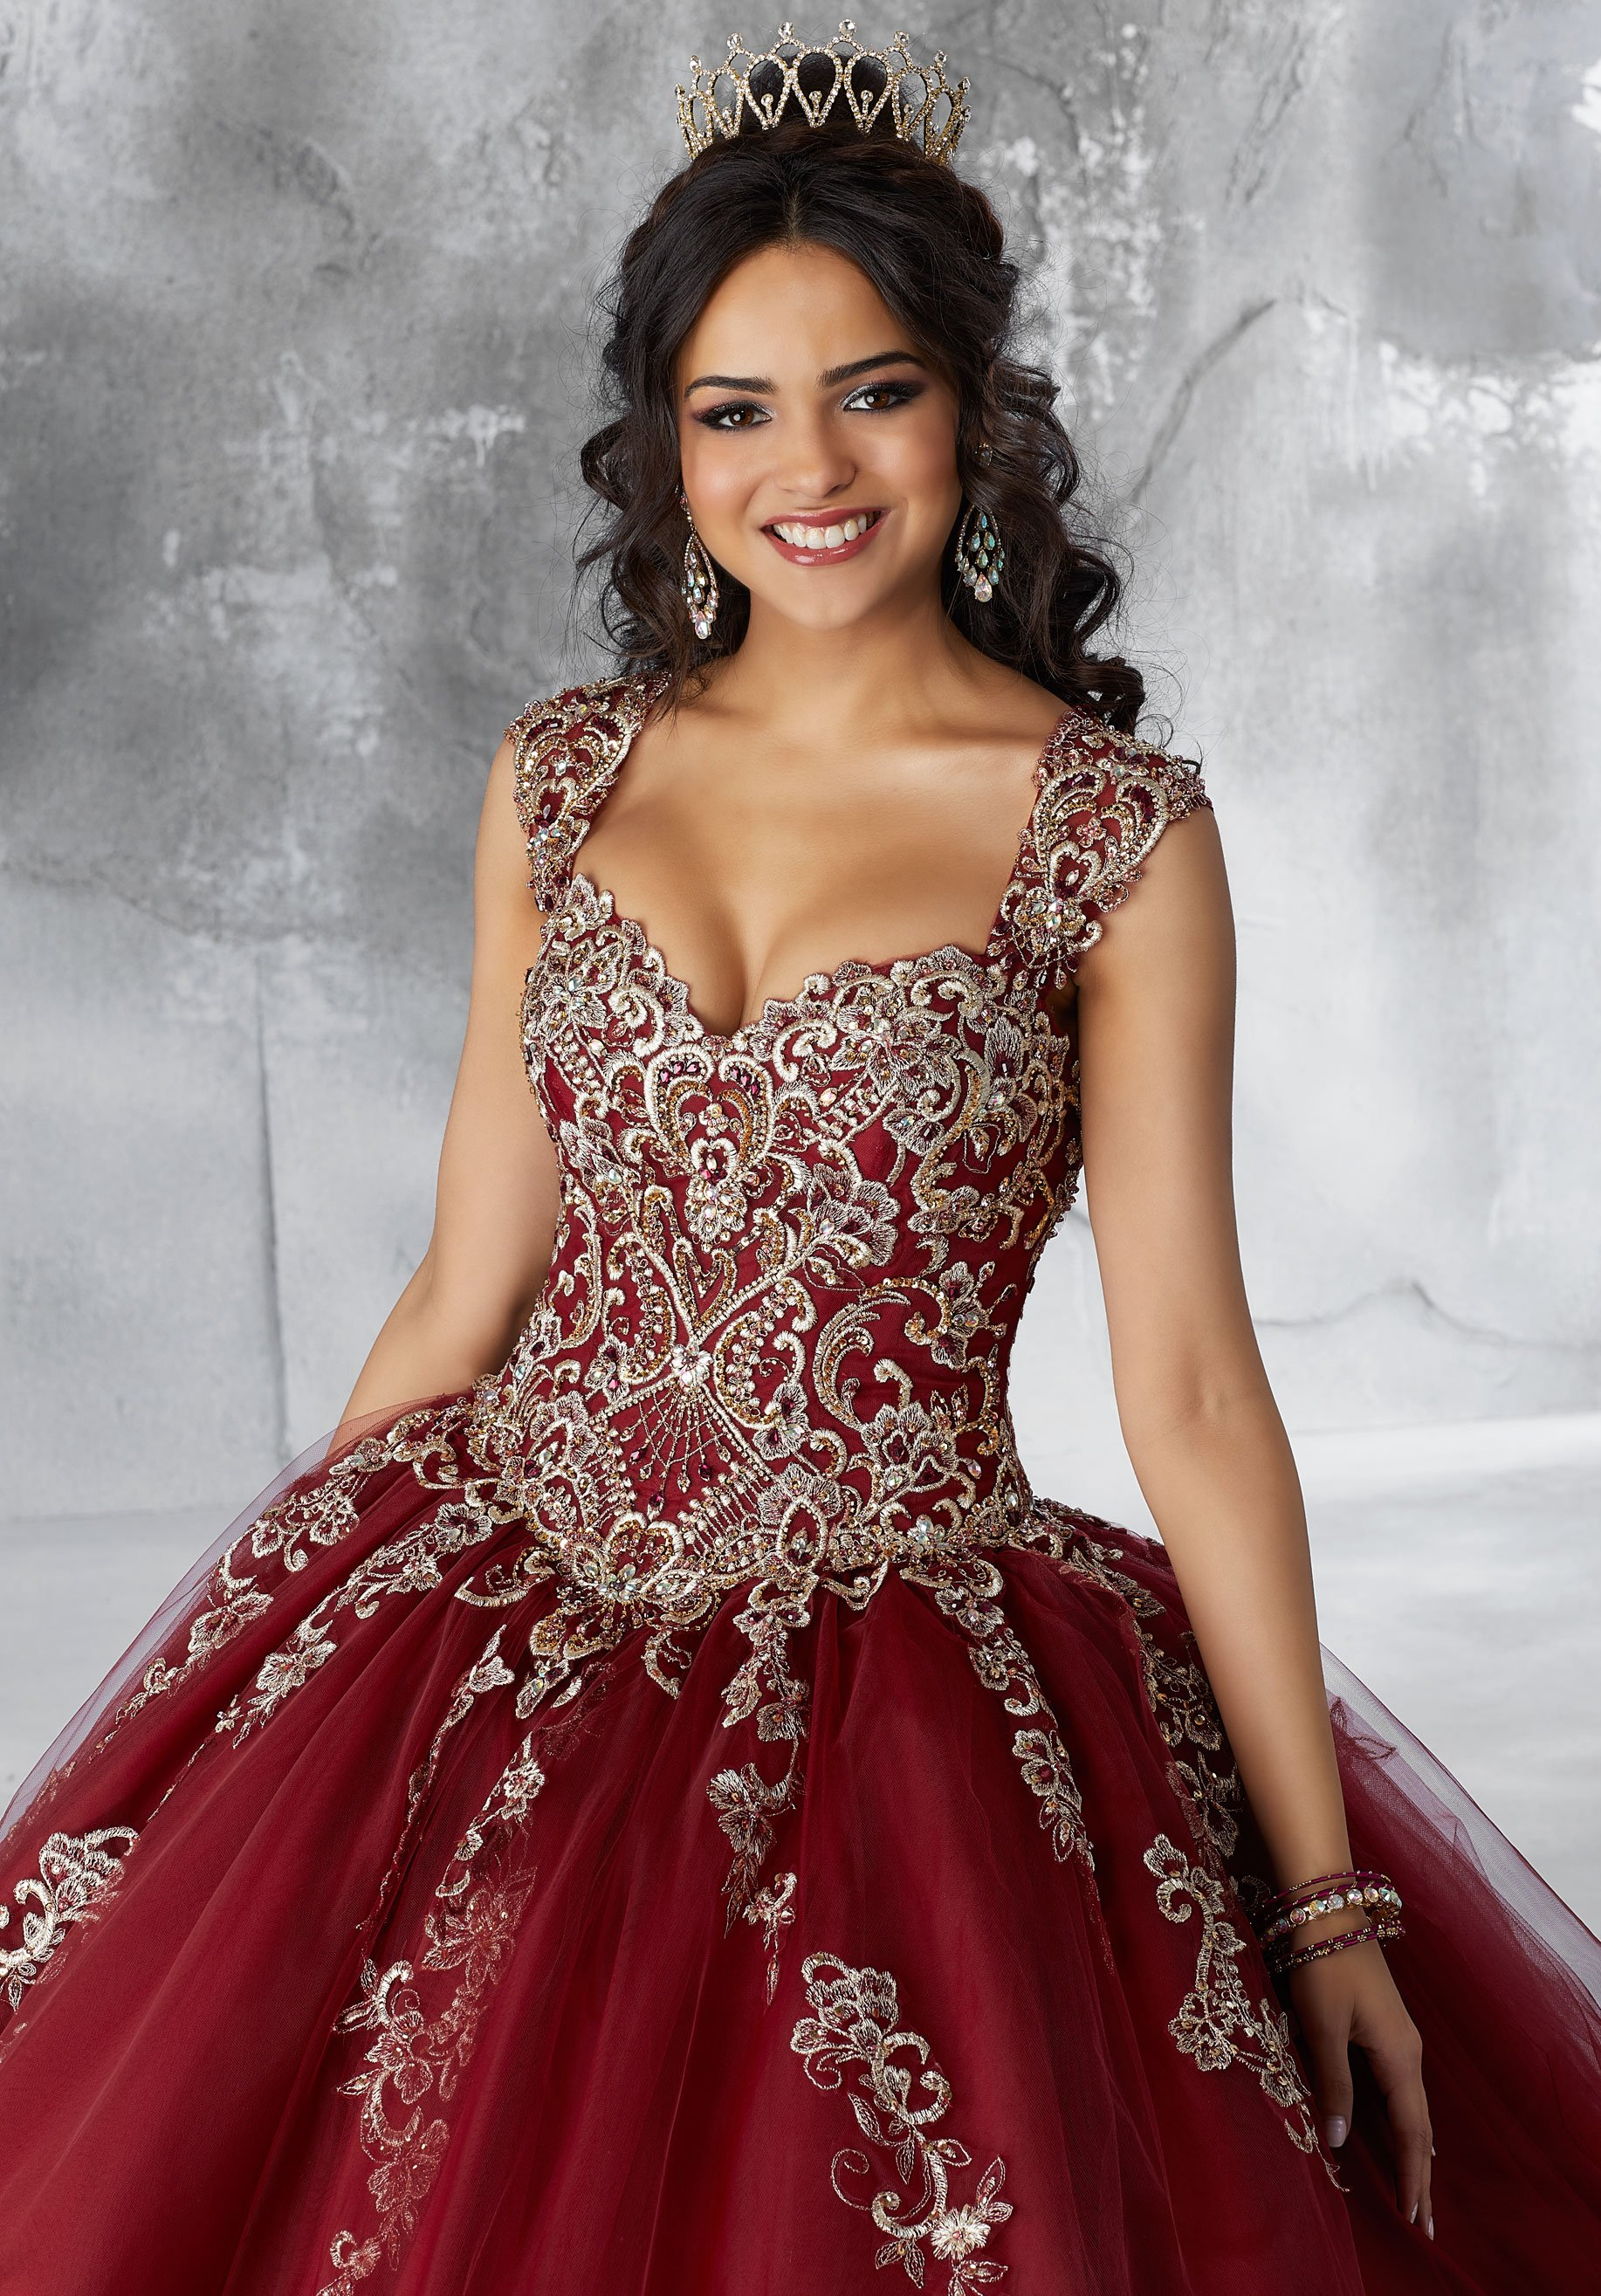 Bead embroidered quinceanera dress by mori lee vizcaya in